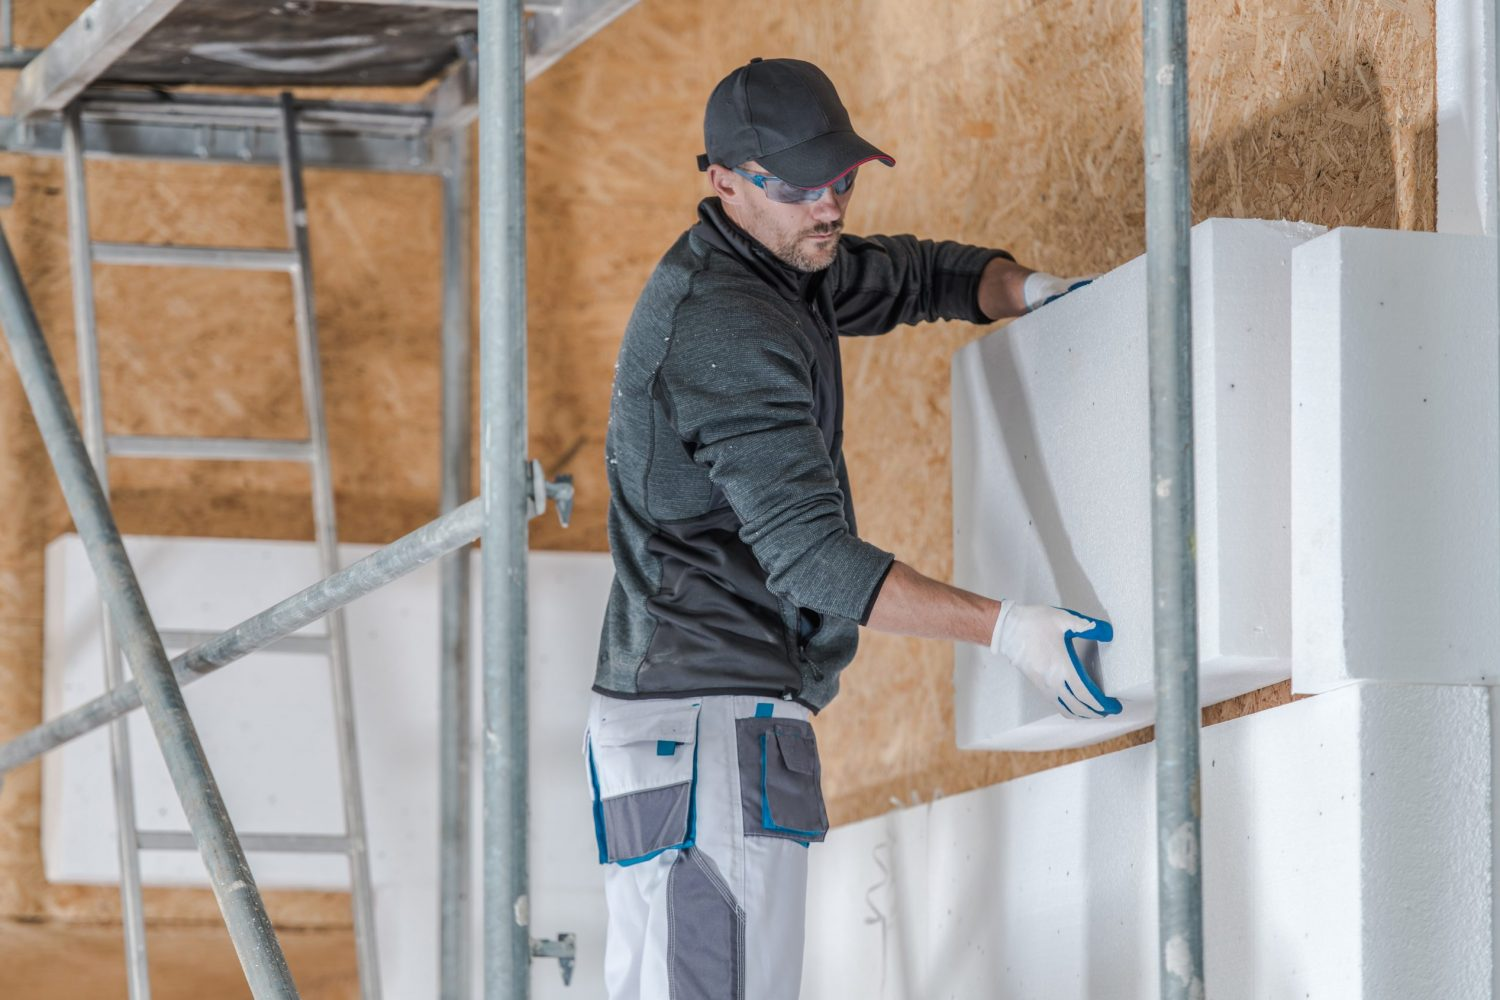 Construction Industry. Caucasian Insulation Installer Contractor in His 30s Working on a Scaffolding.